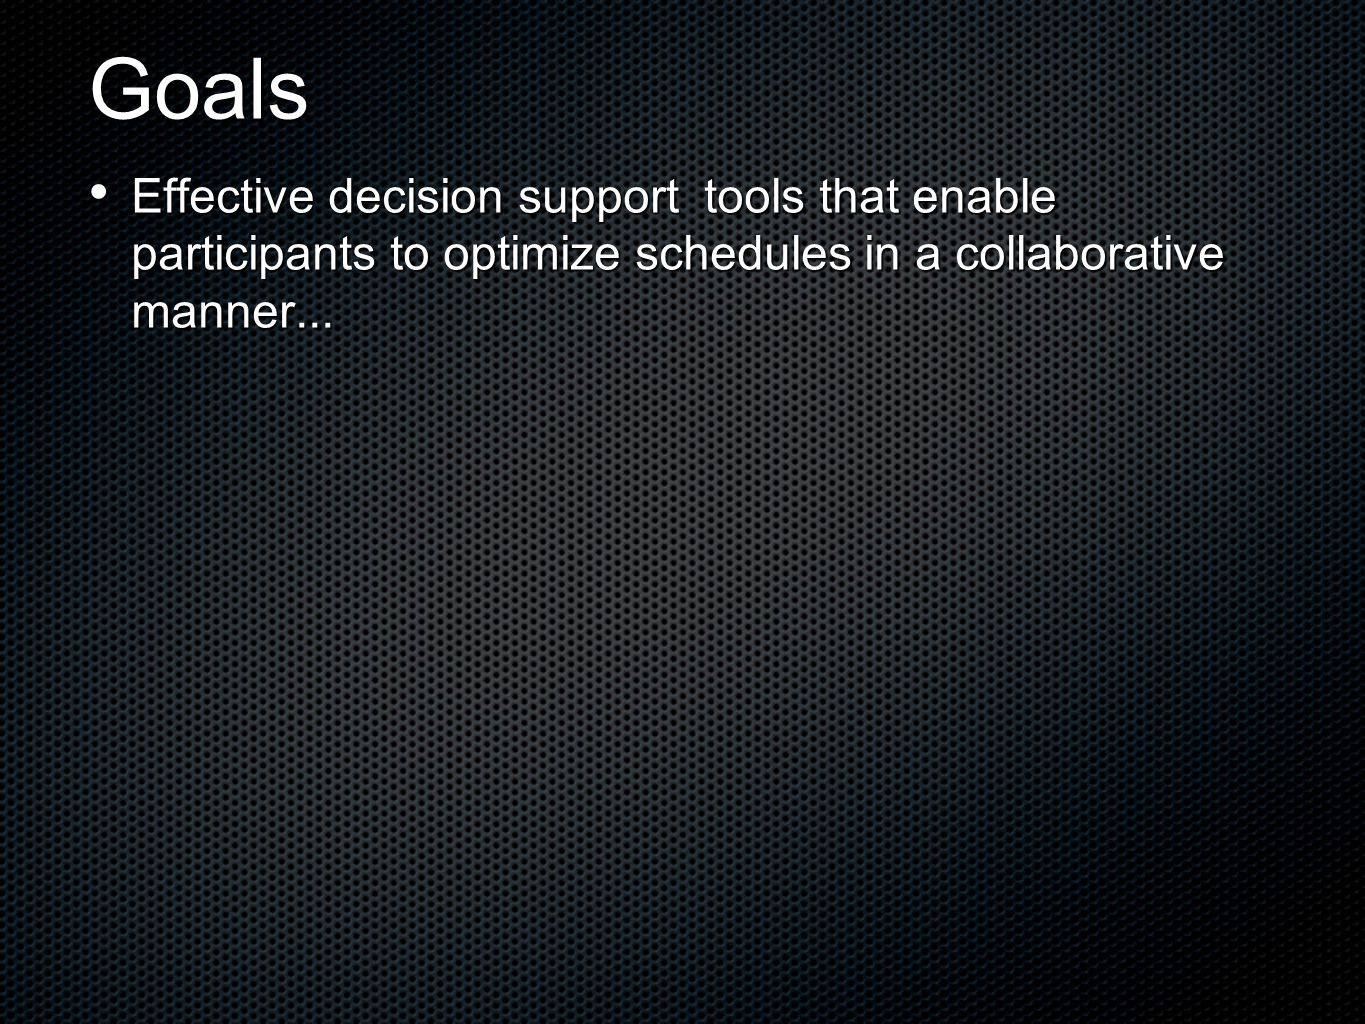 Goals Effective decision support tools that enable participants to optimize schedules in a collaborative manner...